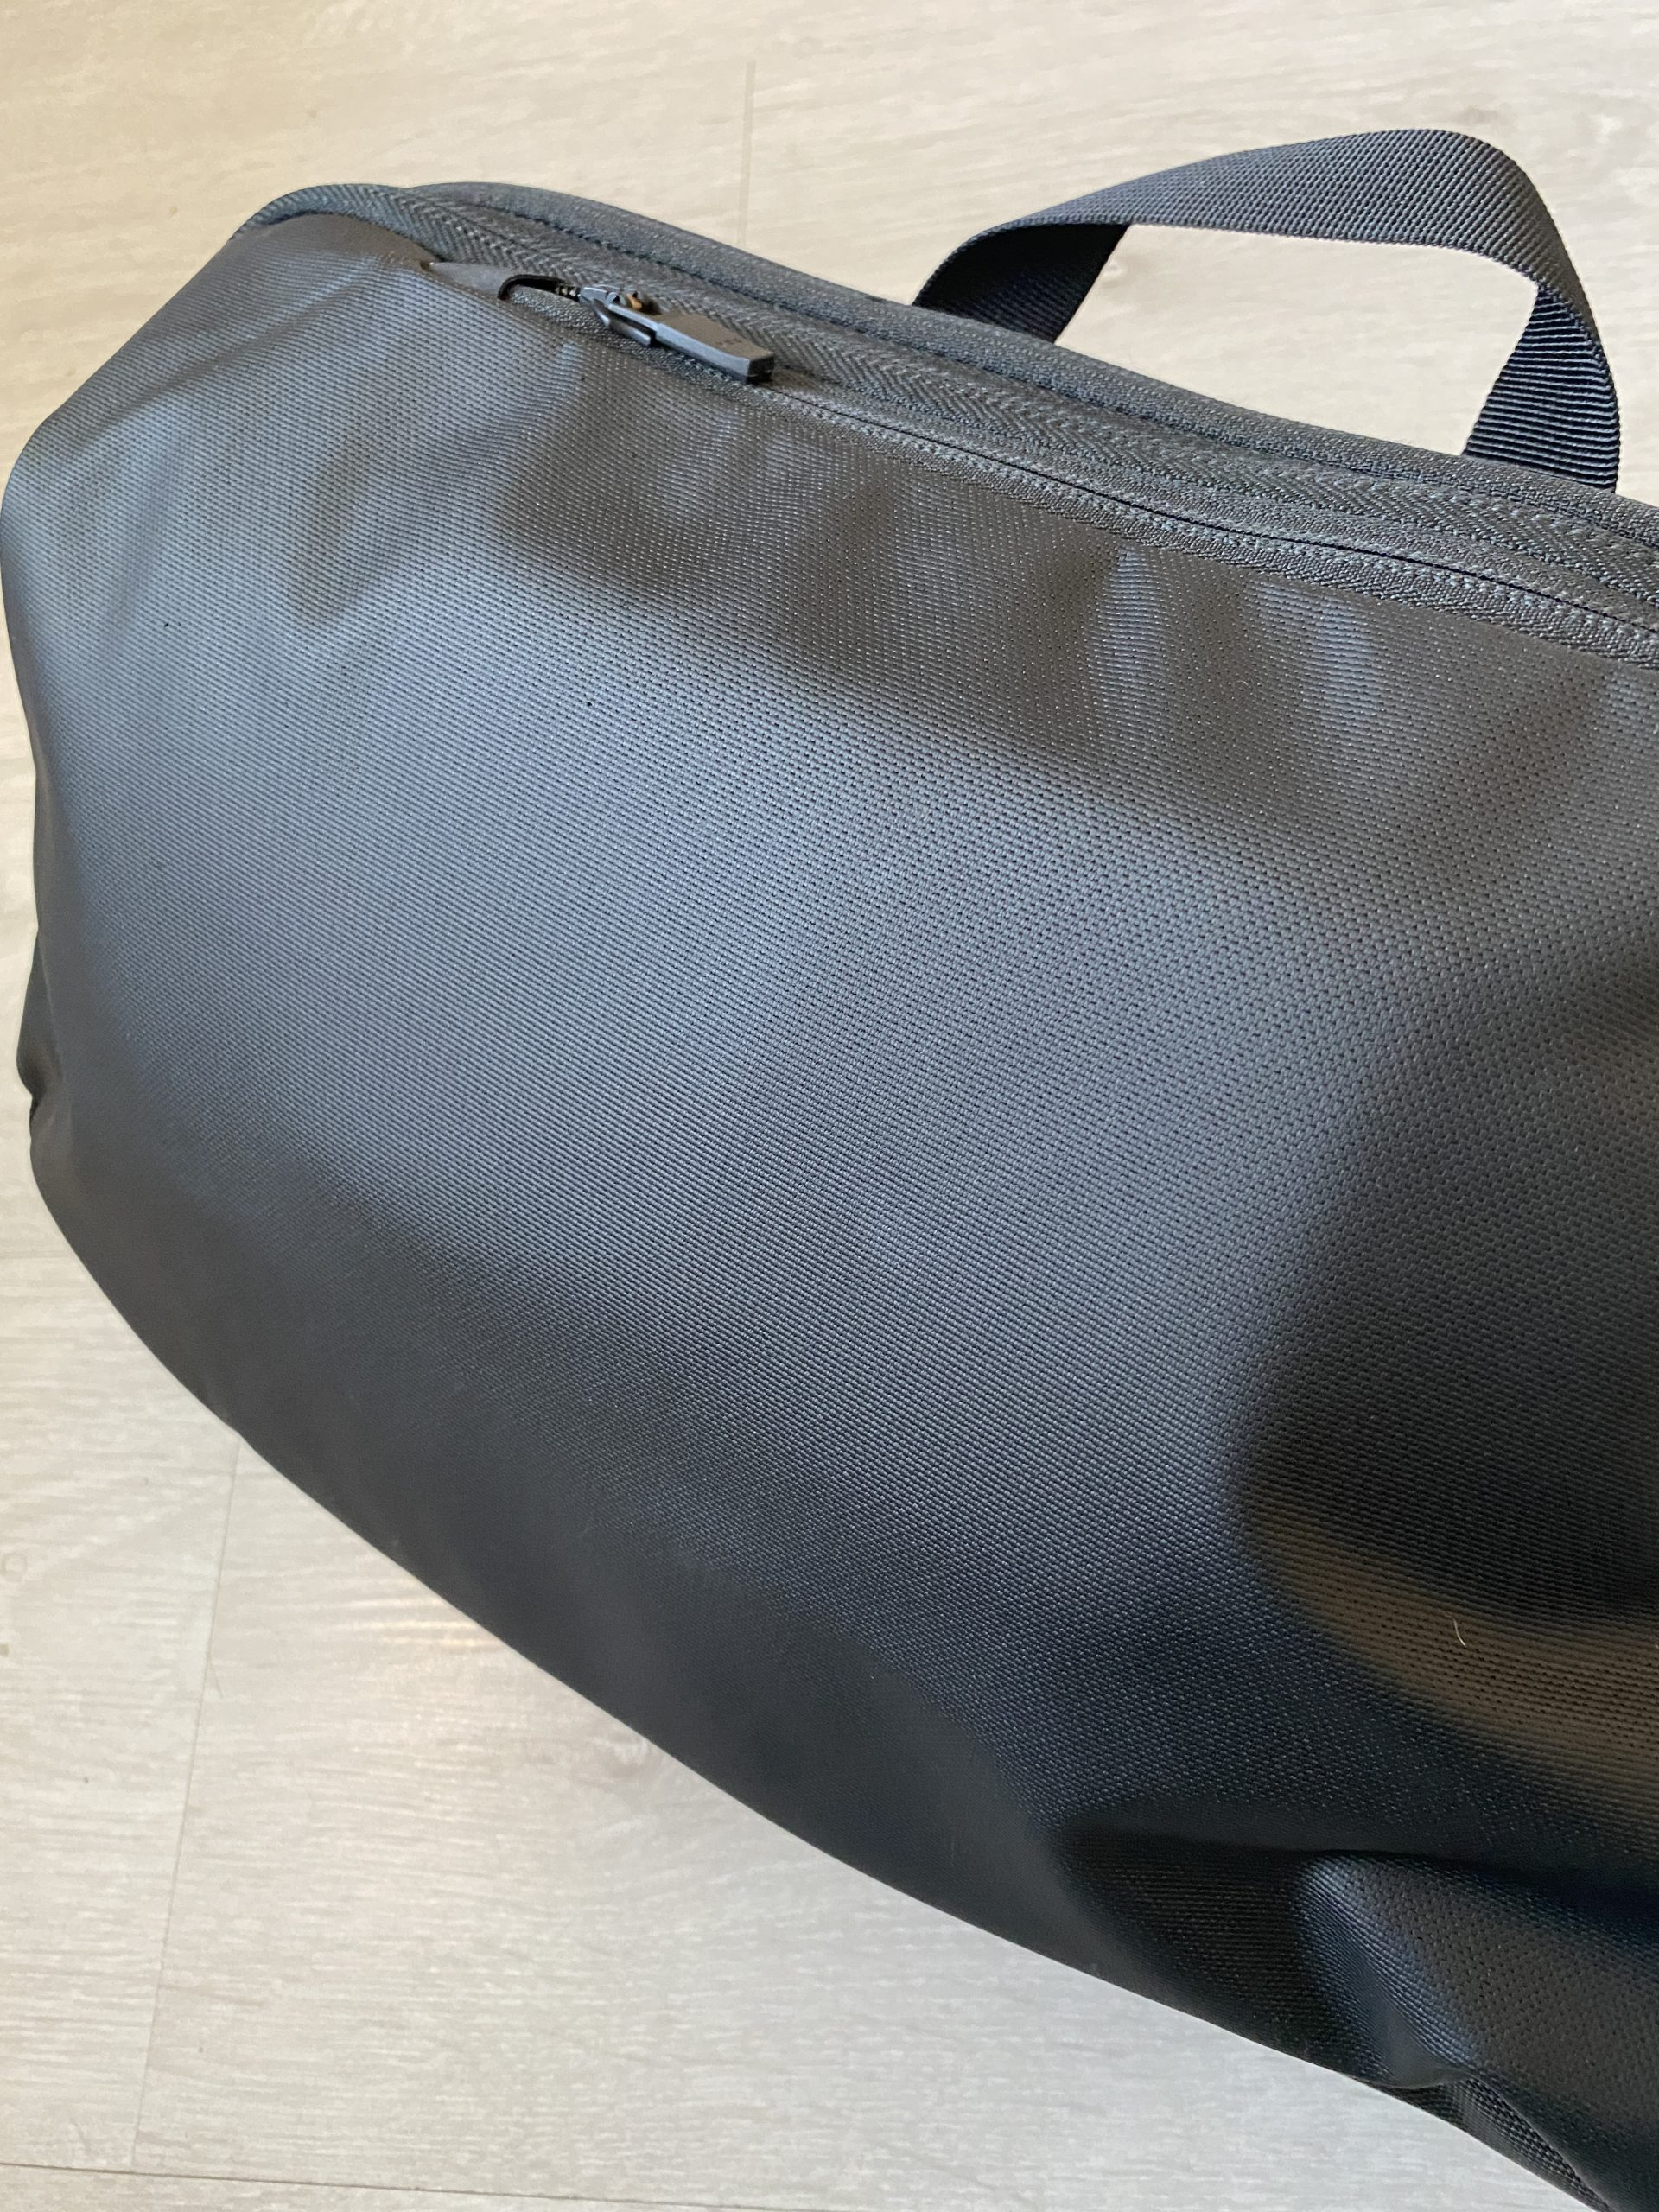 Aer Tech Sling 2 Review Outline Of Item In Quick-Access Pocket